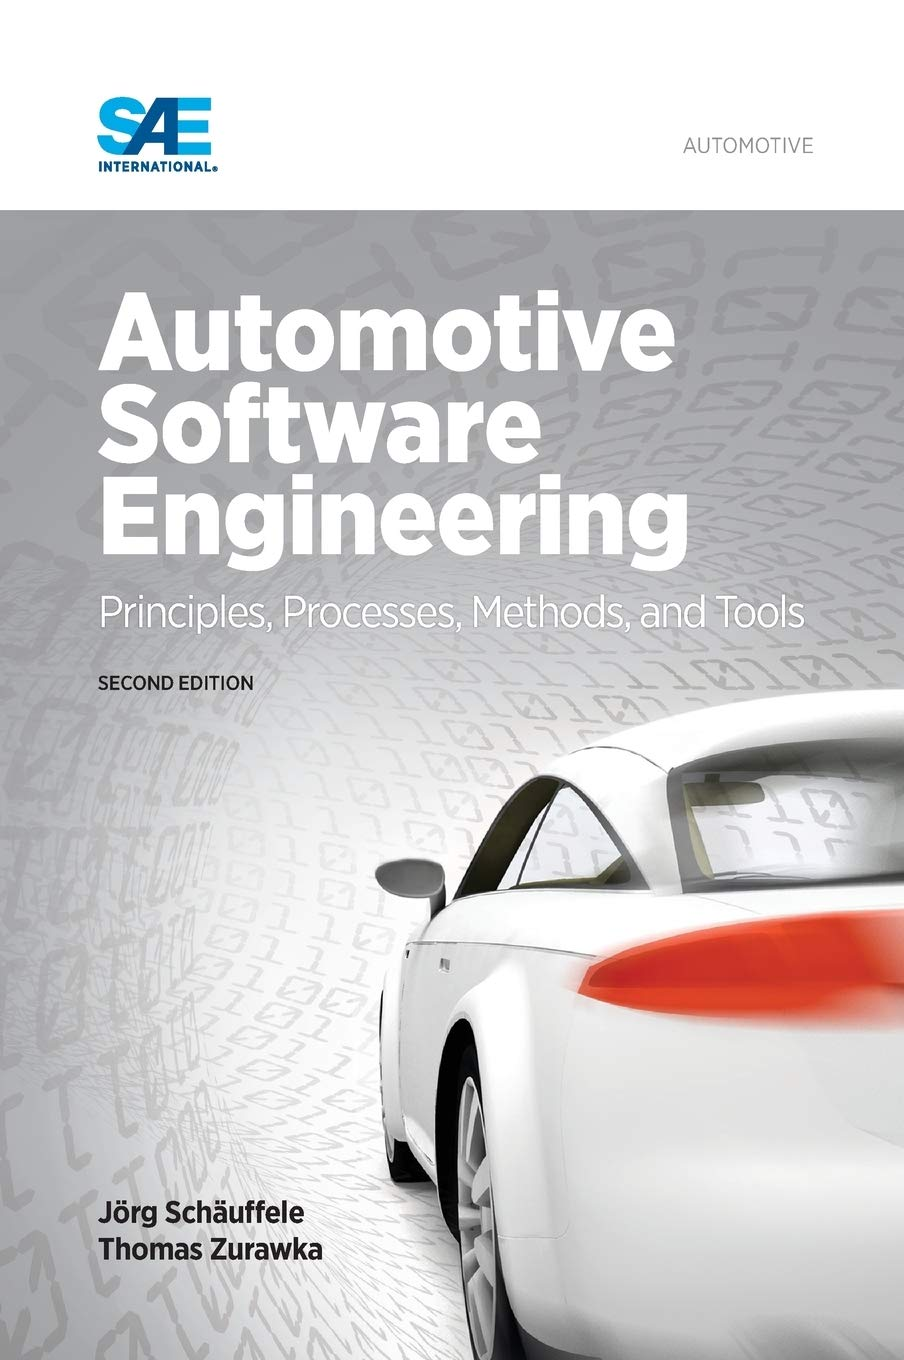 Automotive Software Engineering Second Edition Thomas Zurawka Joerg Schaeuffele 9780768079920 Amazon Com Books